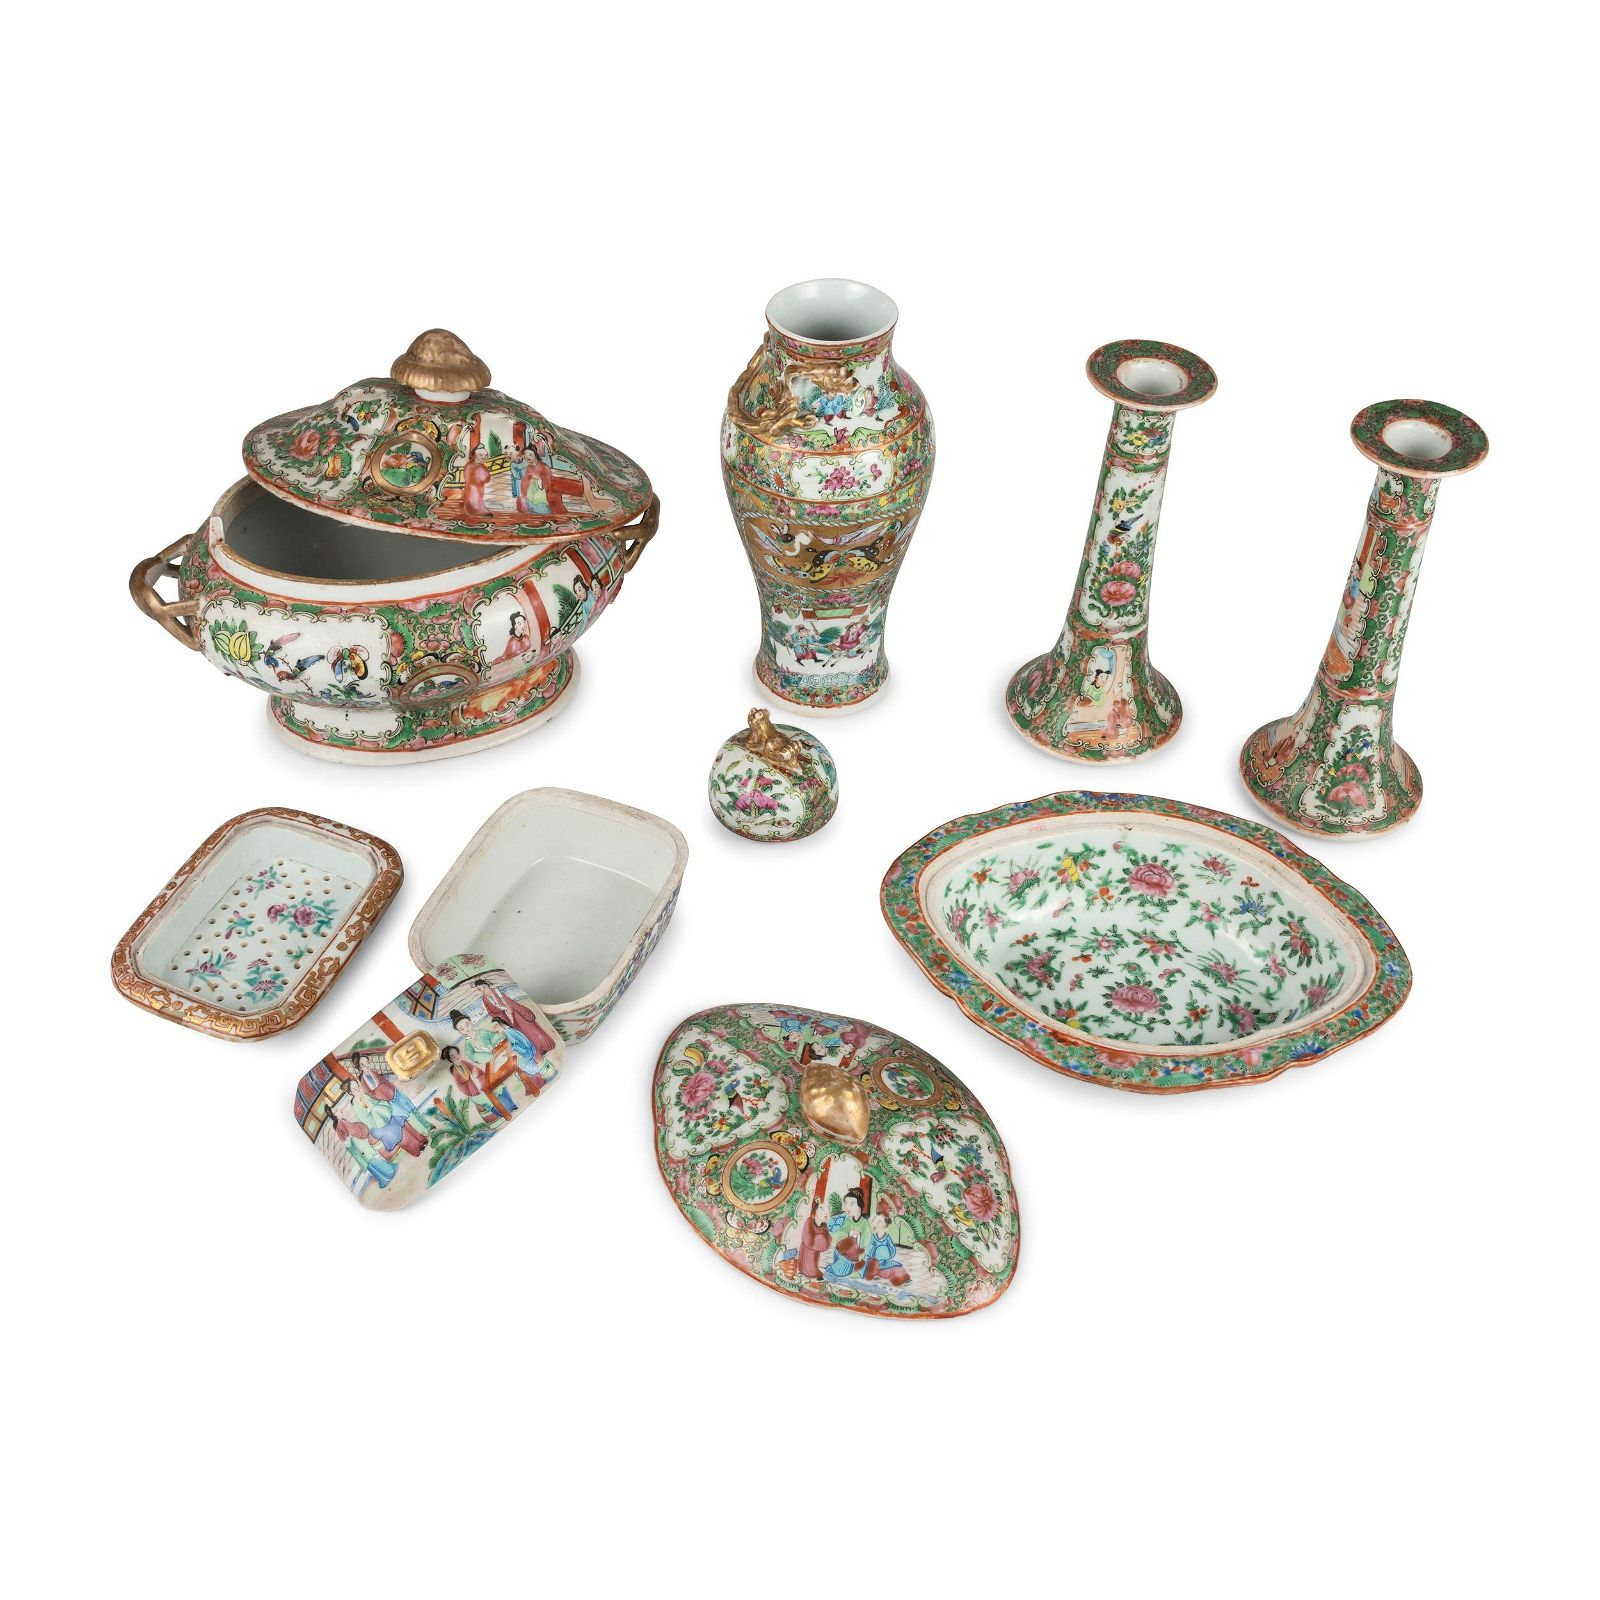 A Collection of Chinese Export Rose Medallion Porcelain